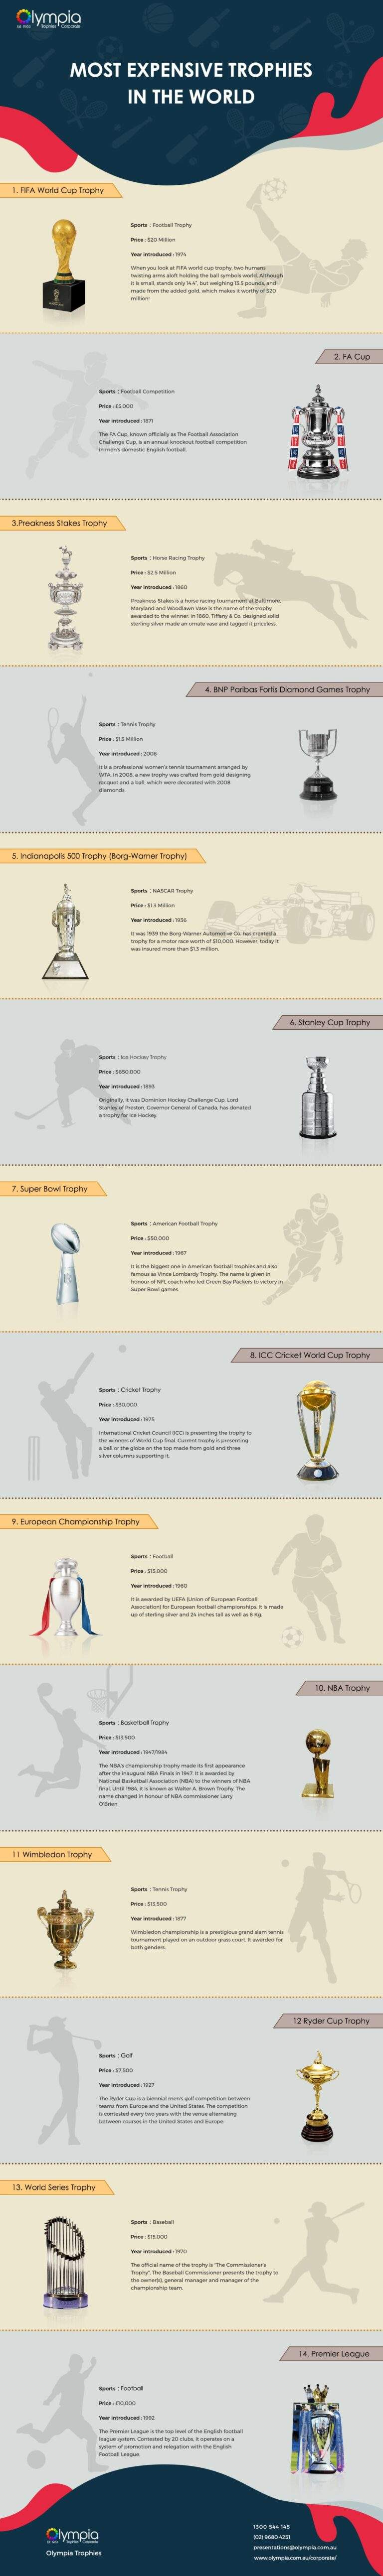 Top 14 Valuable Trophies in 2019